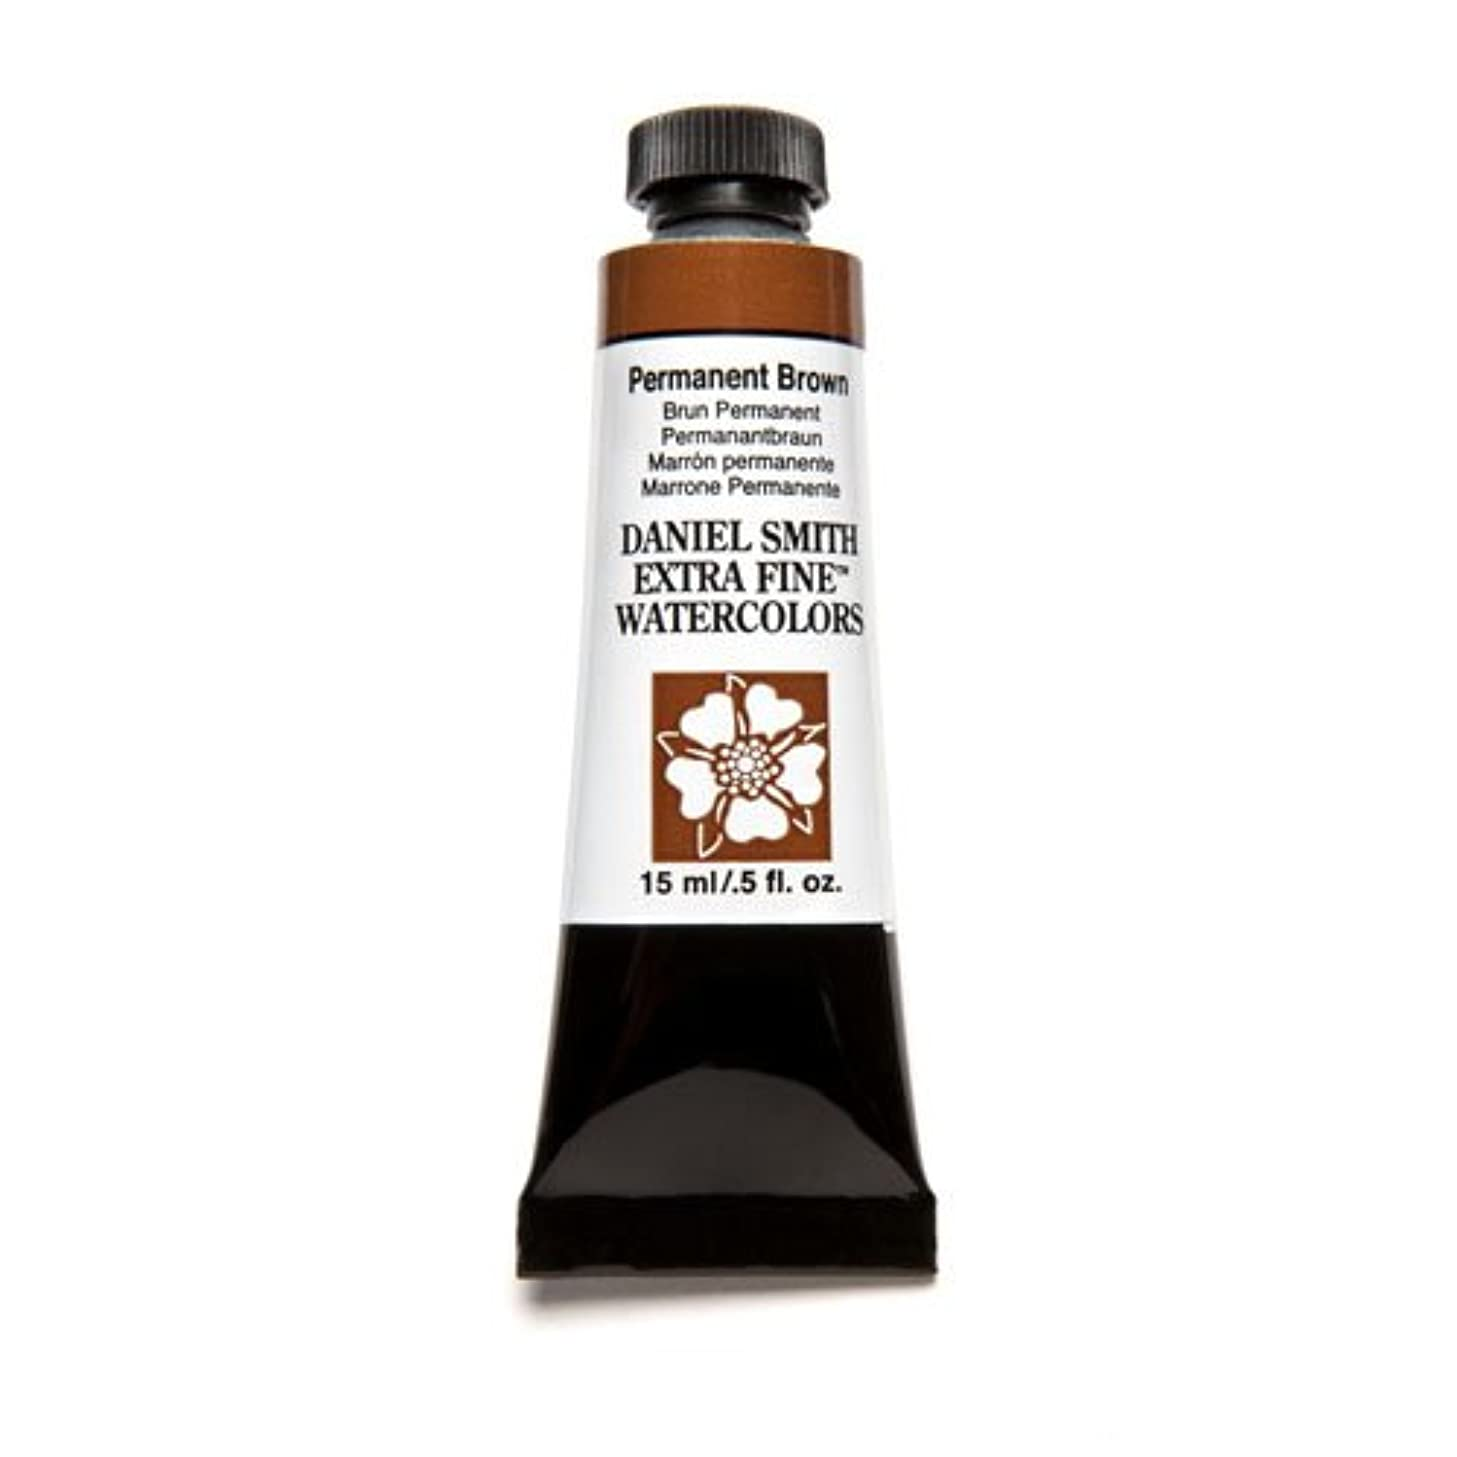 DANIEL SMITH Extra Fine Watercolor 15ml Paint Tube, Permanent Brown